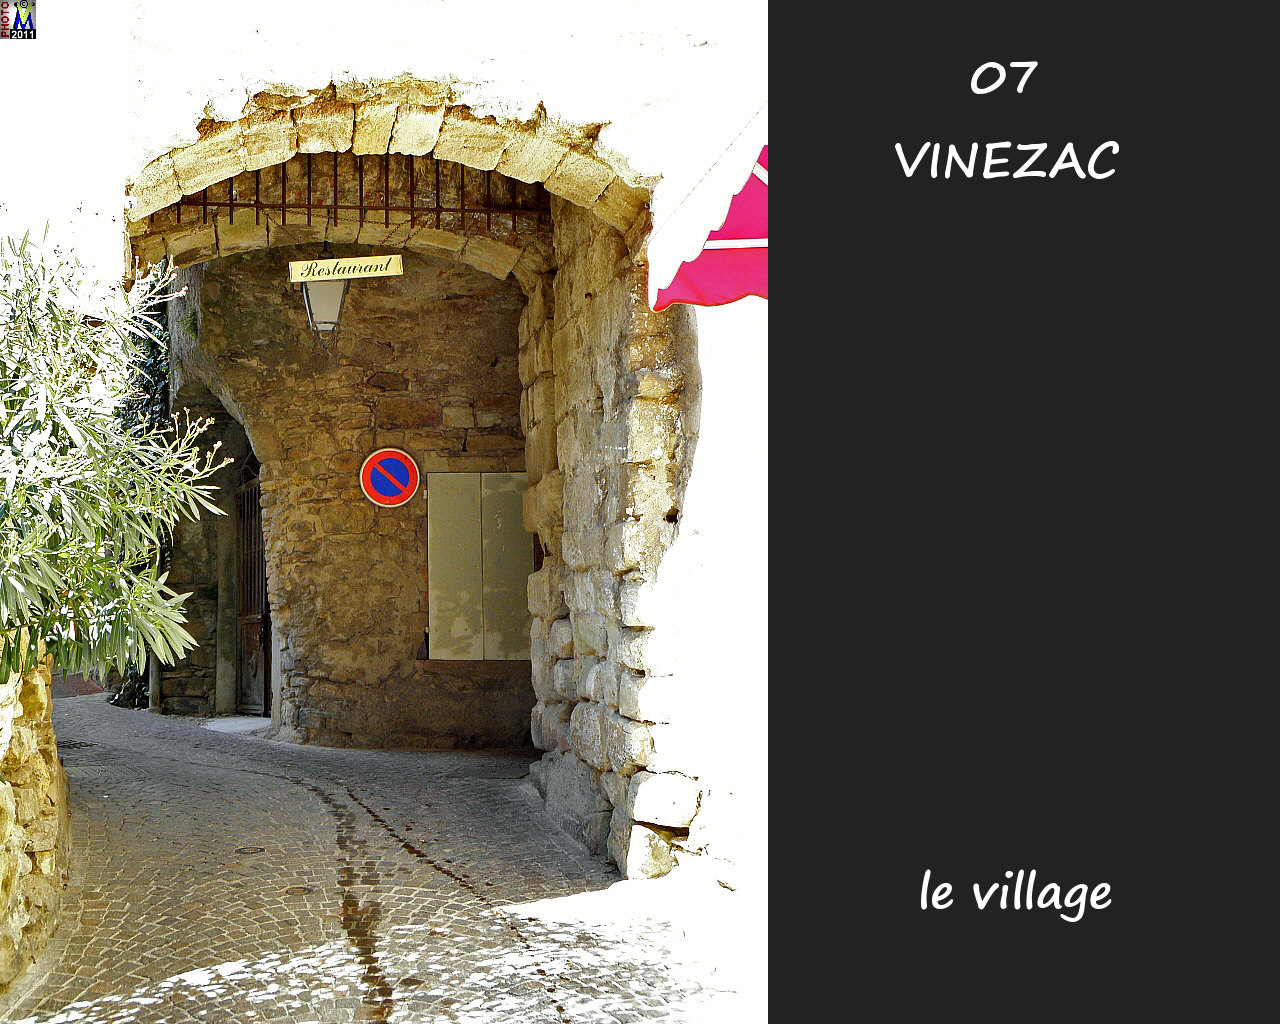 07VINEZAC_village_134.jpg